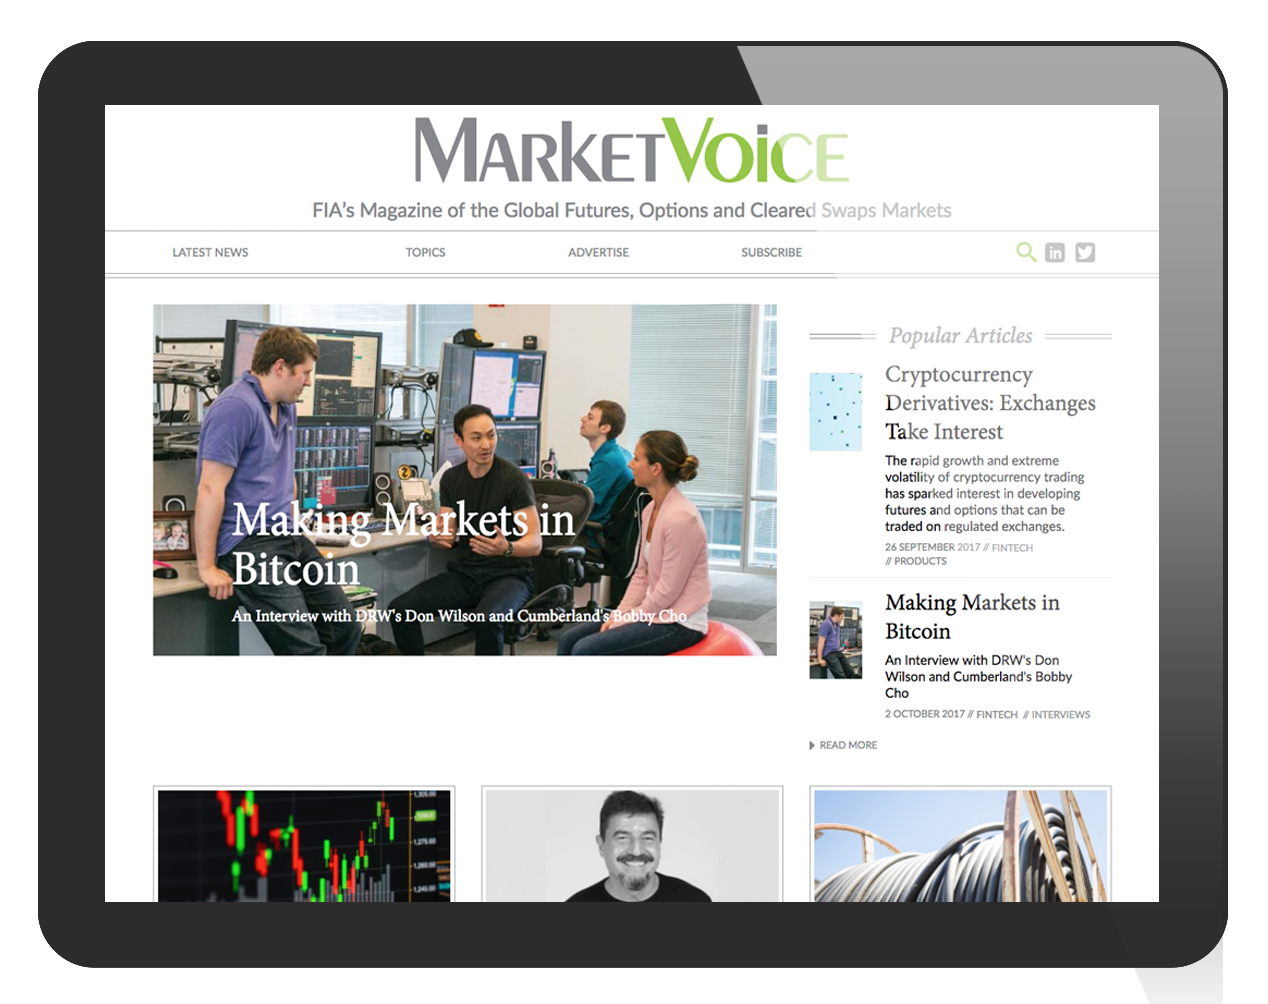 MarketVoice